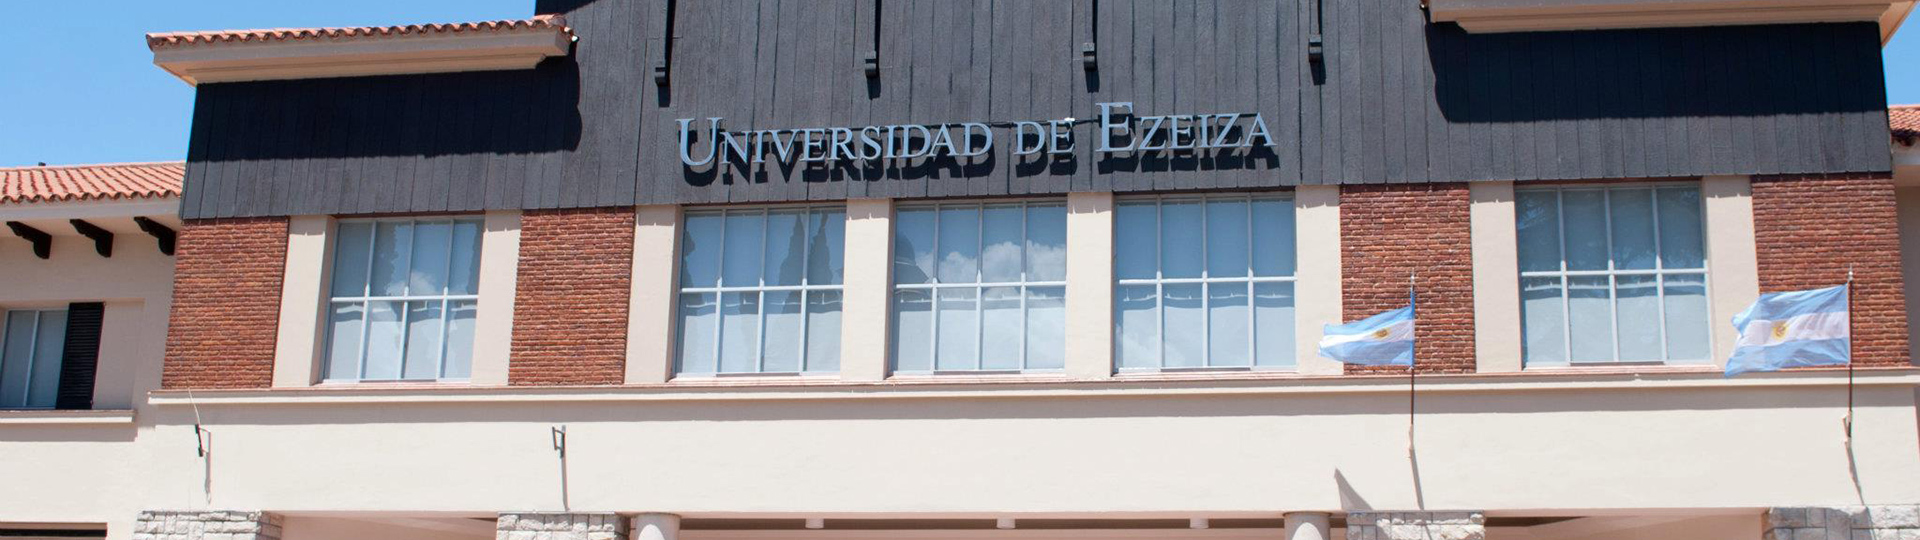 Universidad_de_Ezeiza